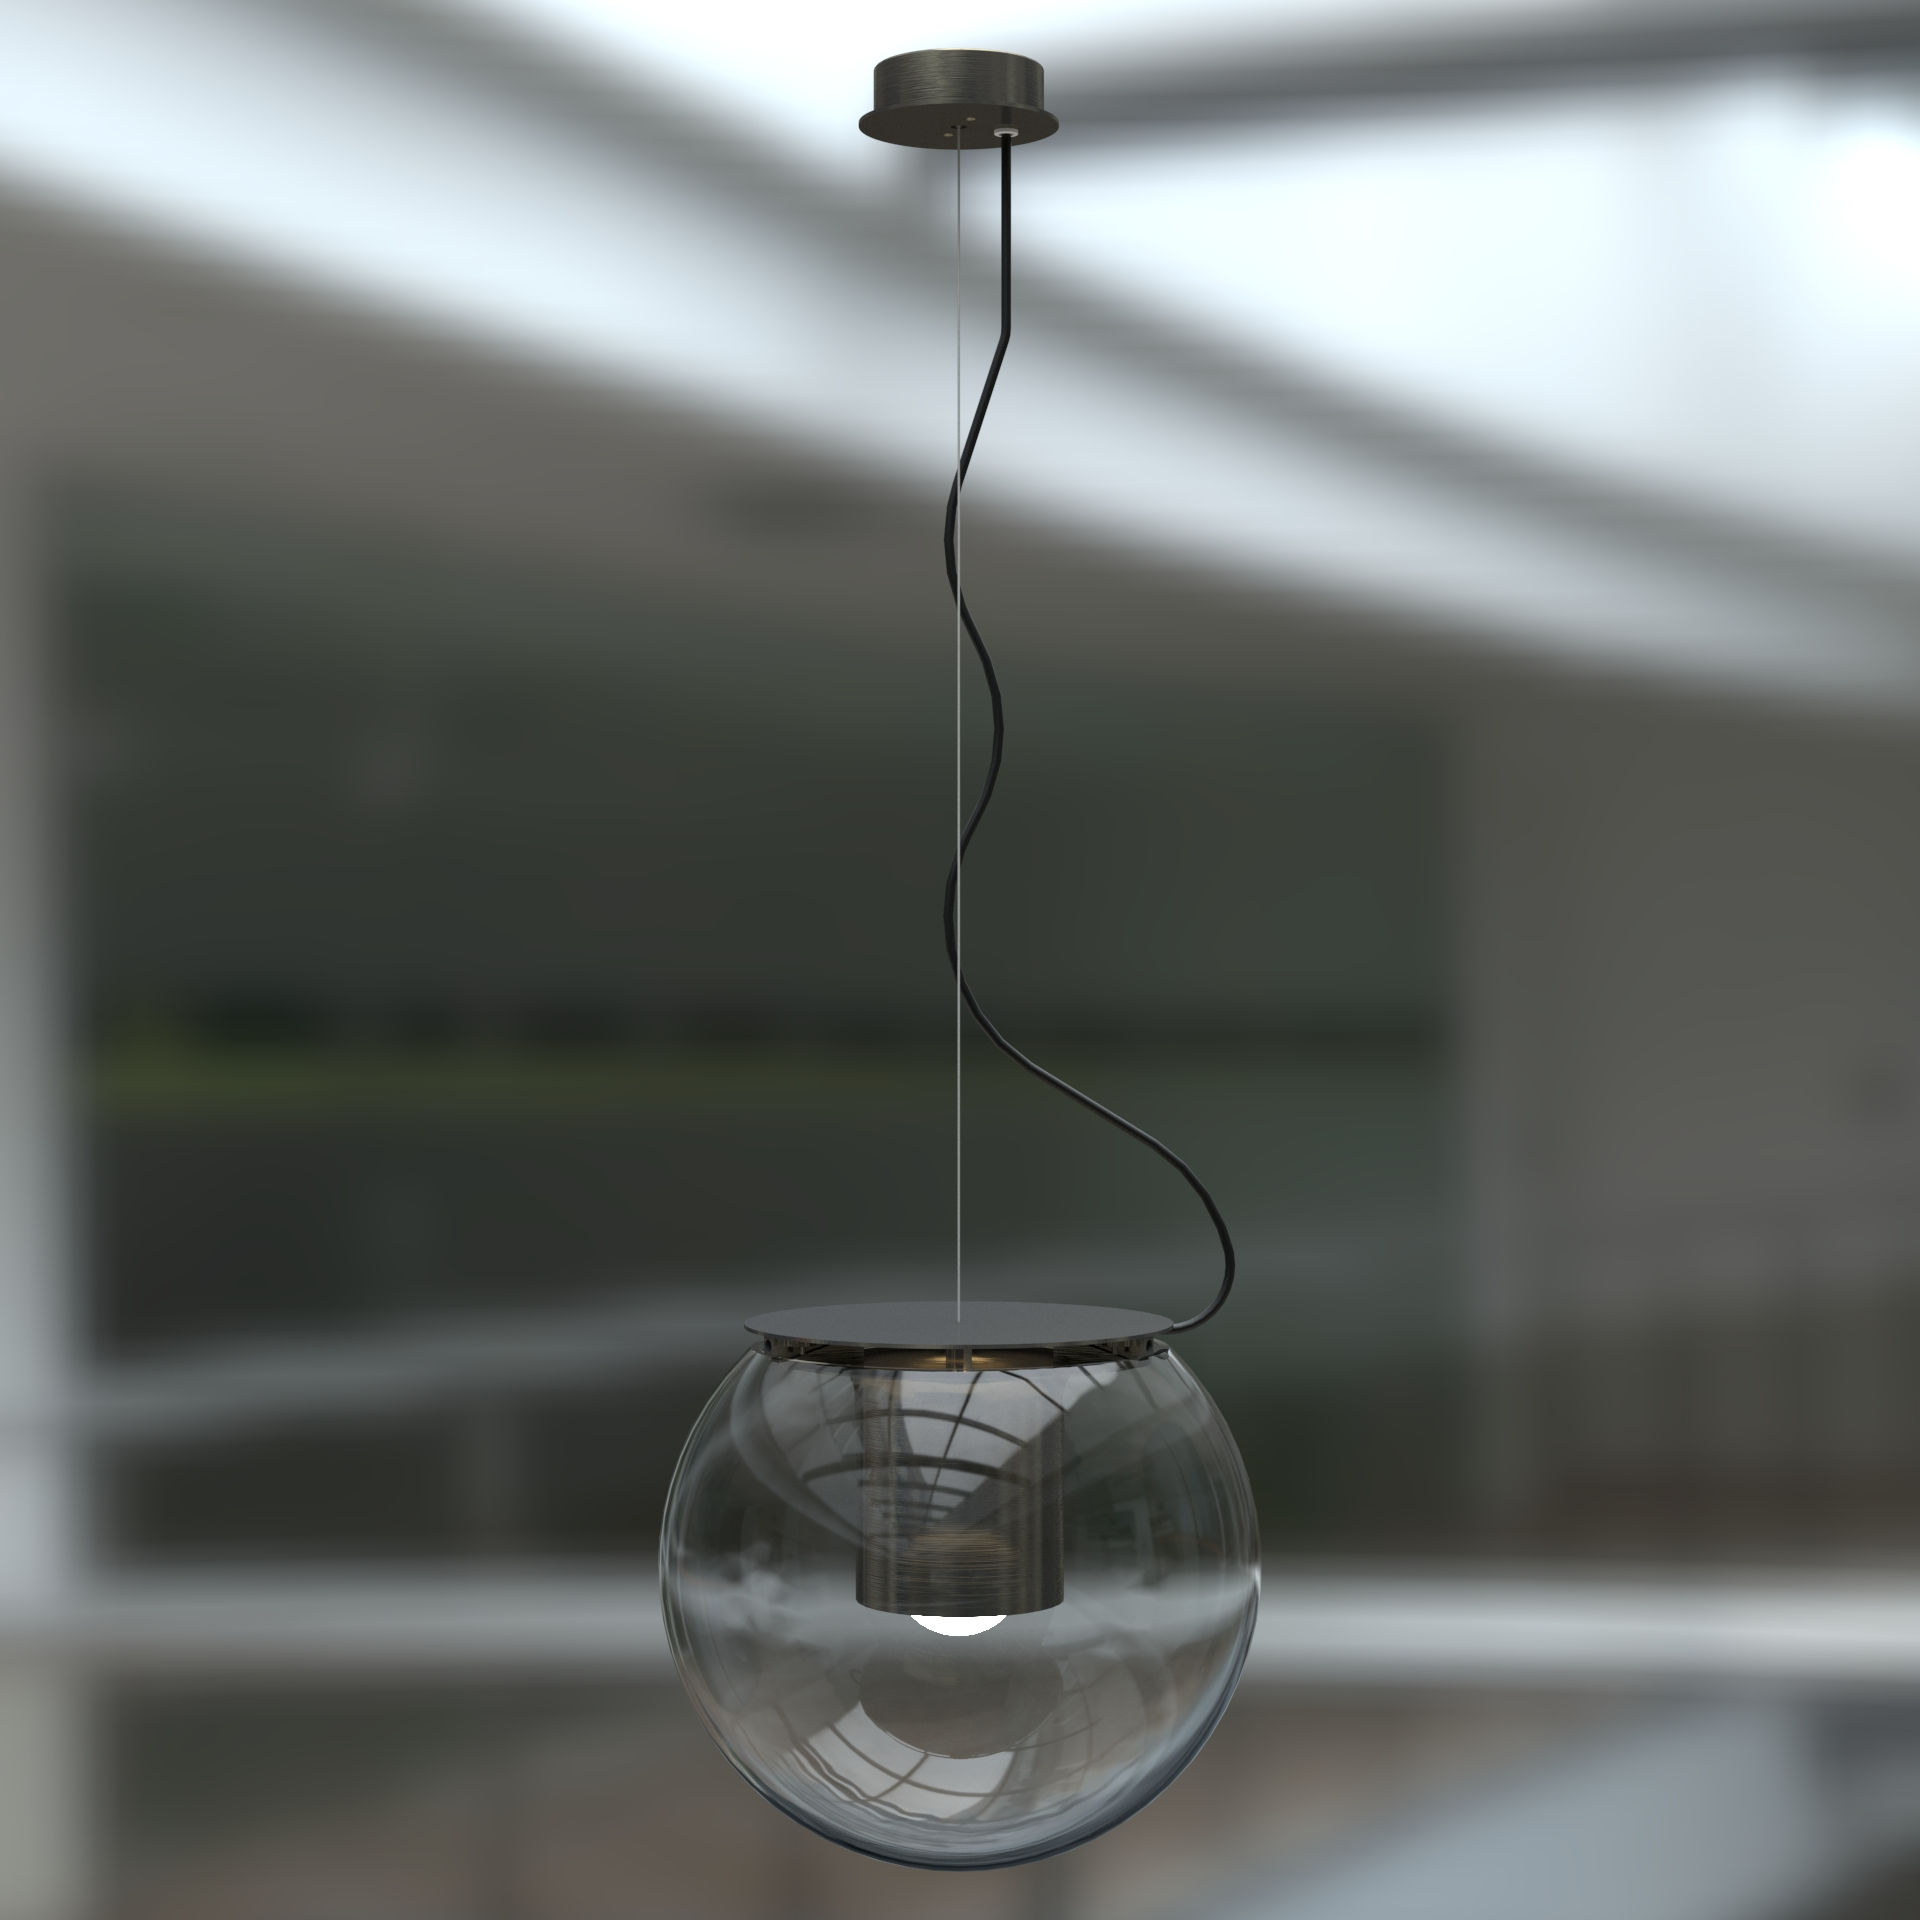 Suspension Light AI 01 Preview 1.jpg